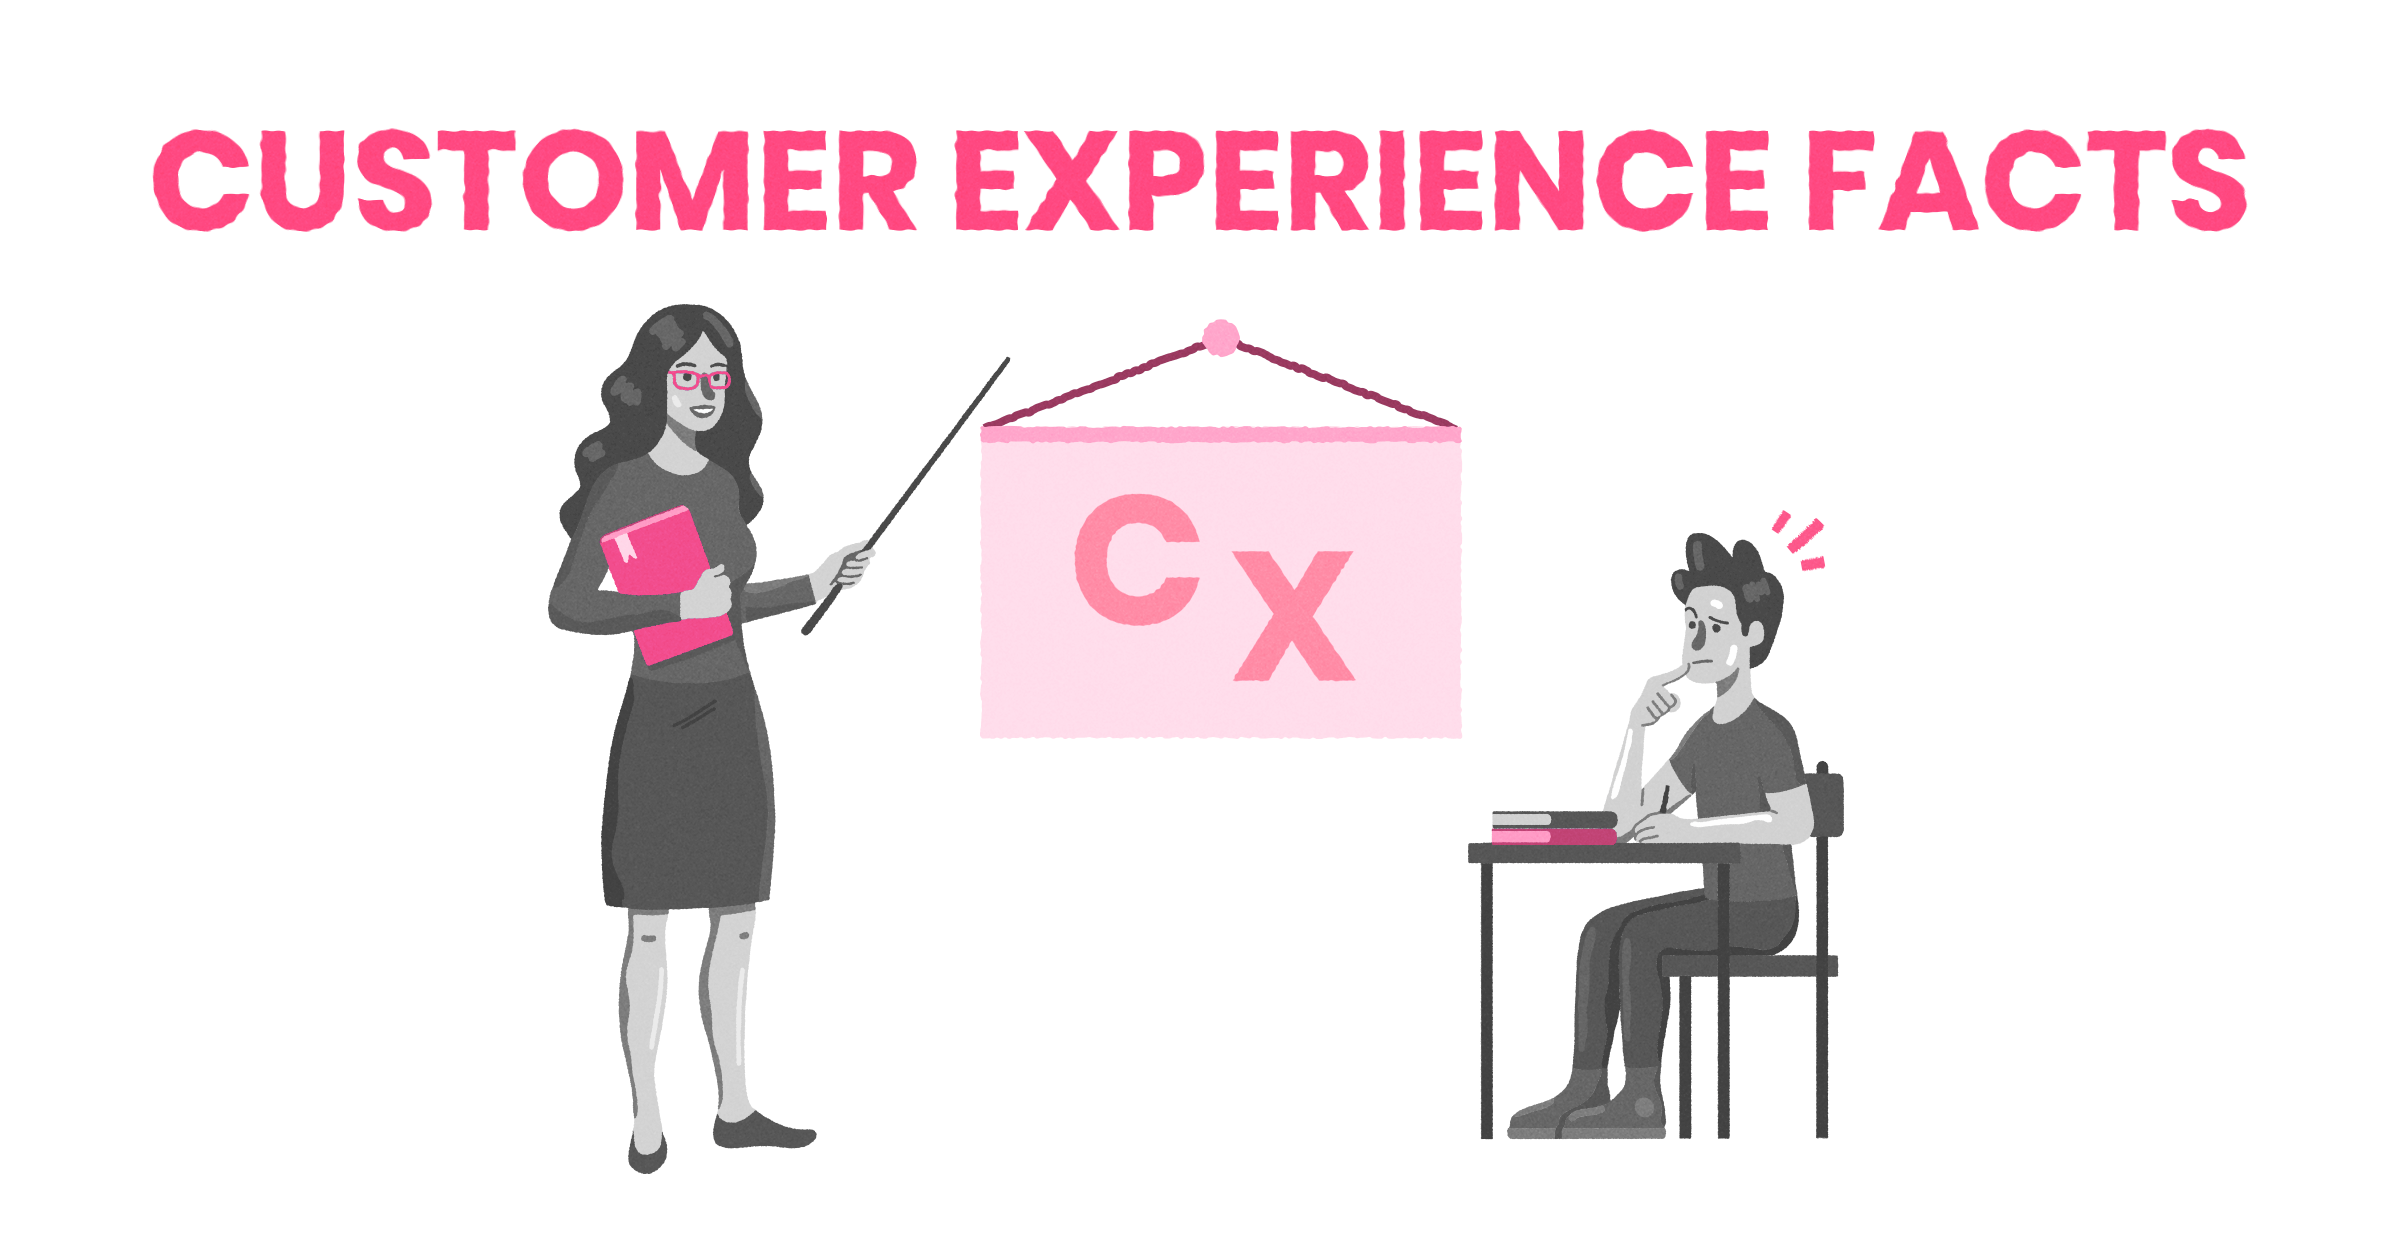 50 facts about Customer Experience